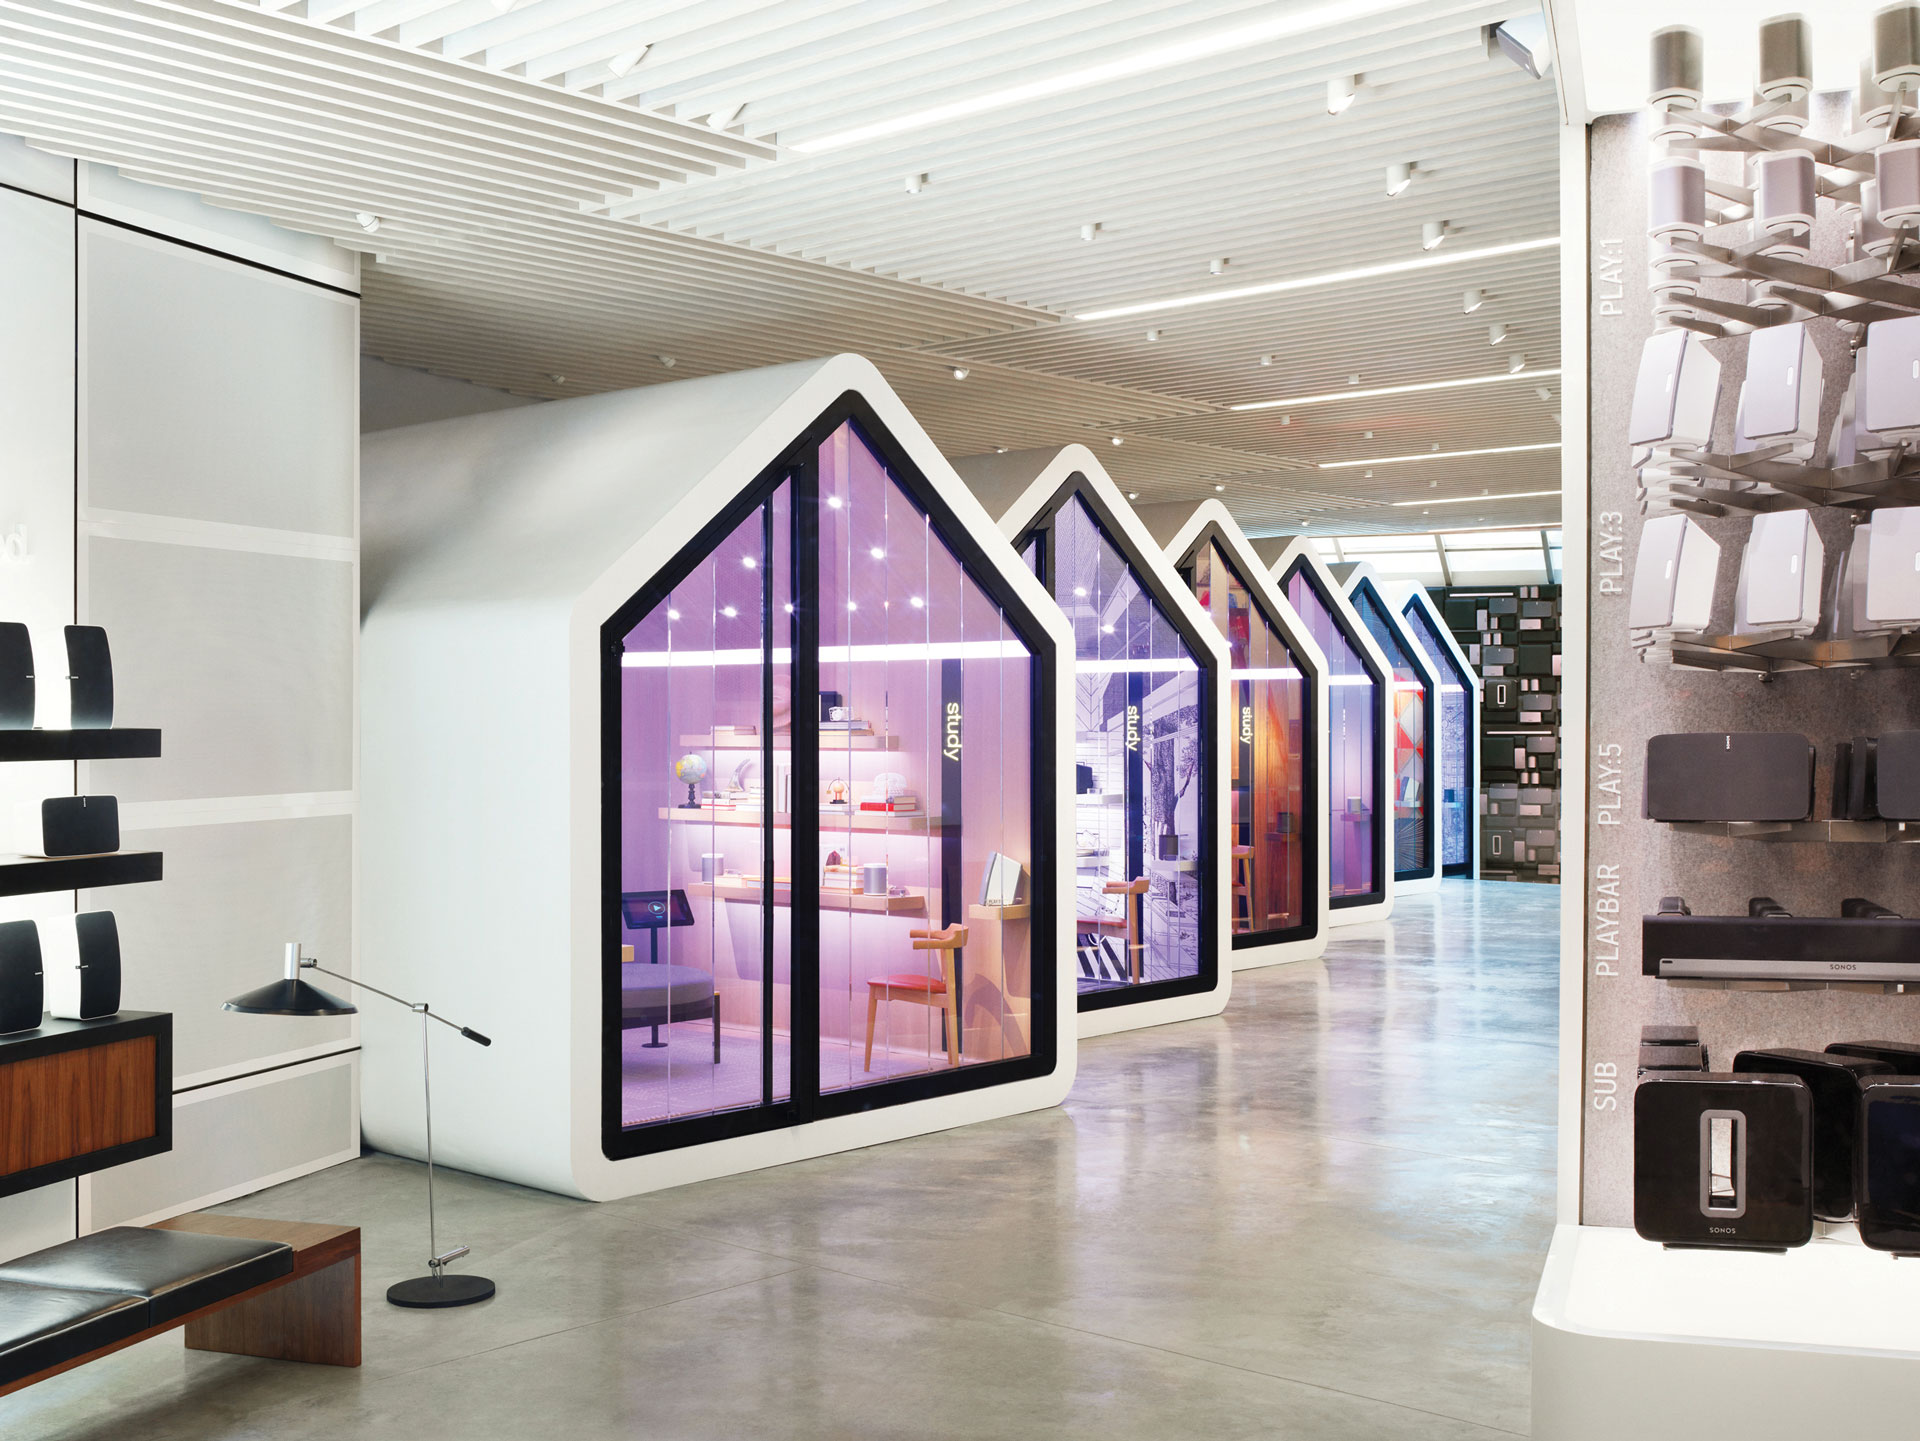 The Sonos store in Soho aims to replicate the experience of listening to Sonos products in the home via various listening rooms – the speakers adjust to the materials and space of a particular room